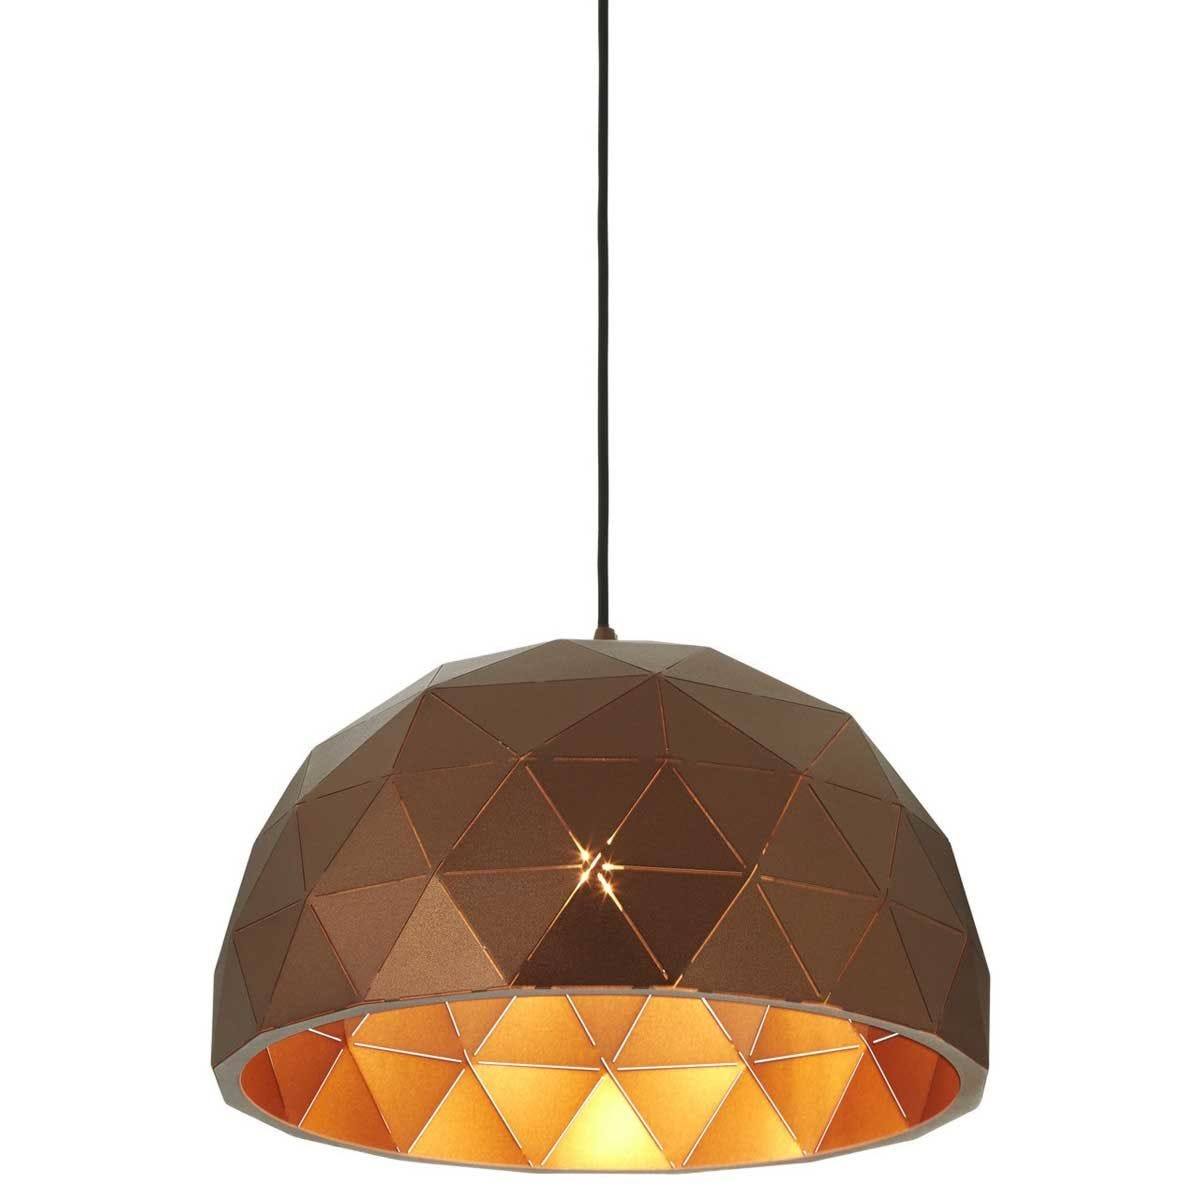 Premier Housewares Mateo Small Dome Pendant Light - Brown